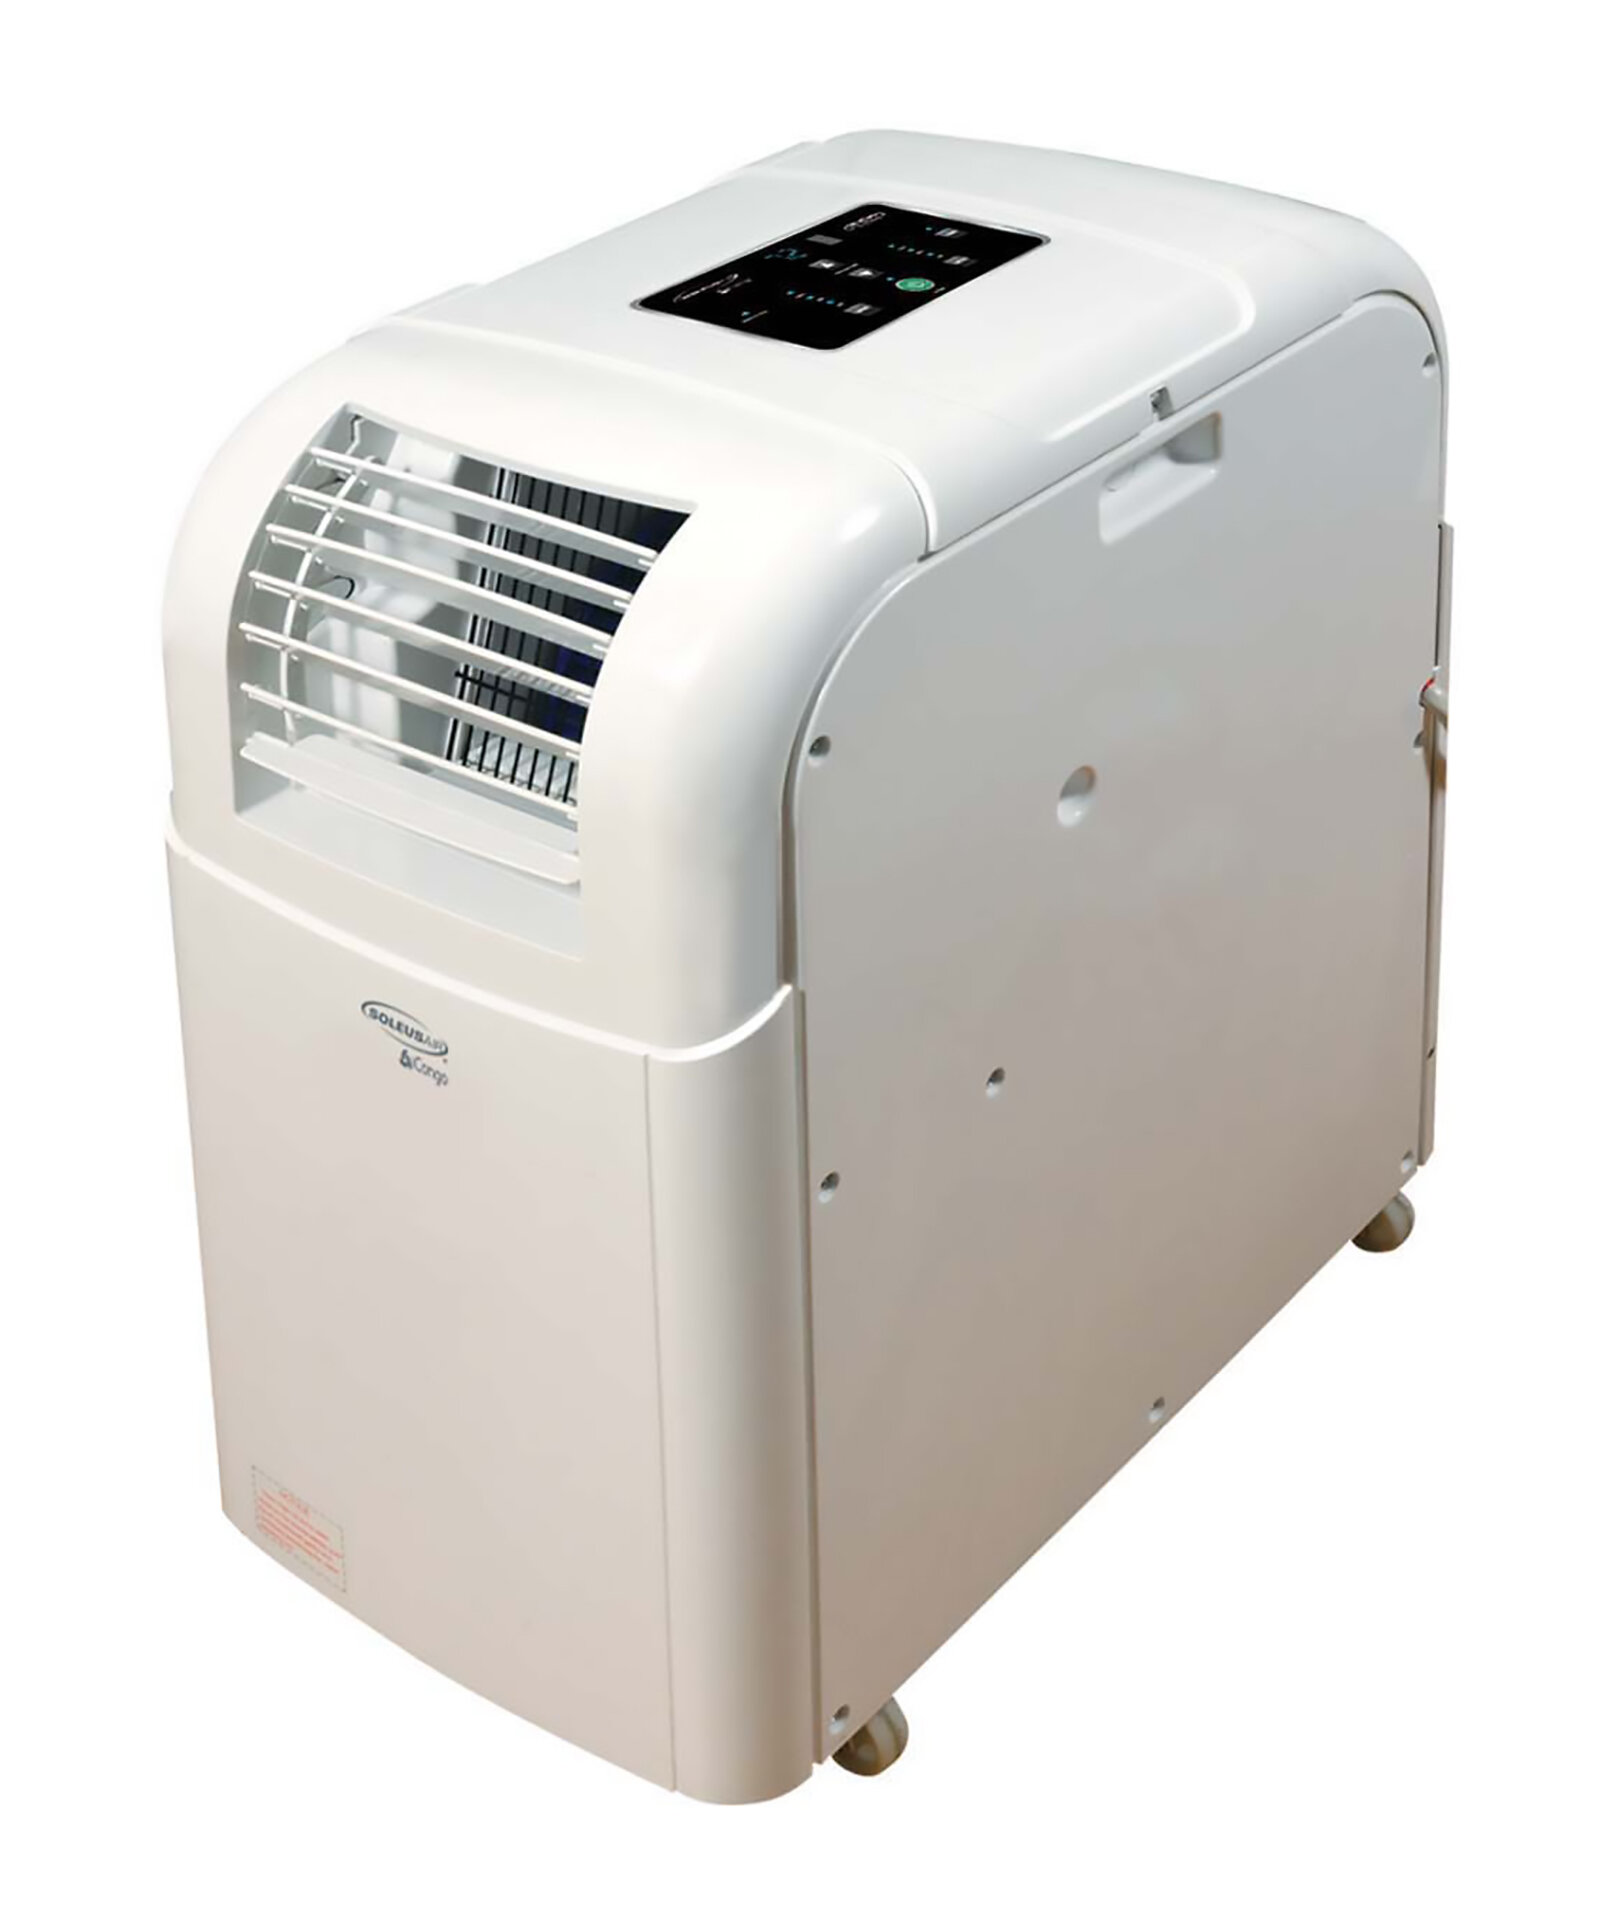 #5F4B30 Soleus Air 12 000 BTU Portable Air Conditioner With Remote  Top of The Line 12934 Low Wattage Portable Air Conditioner picture with 1600x1920 px on helpvideos.info - Air Conditioners, Air Coolers and more